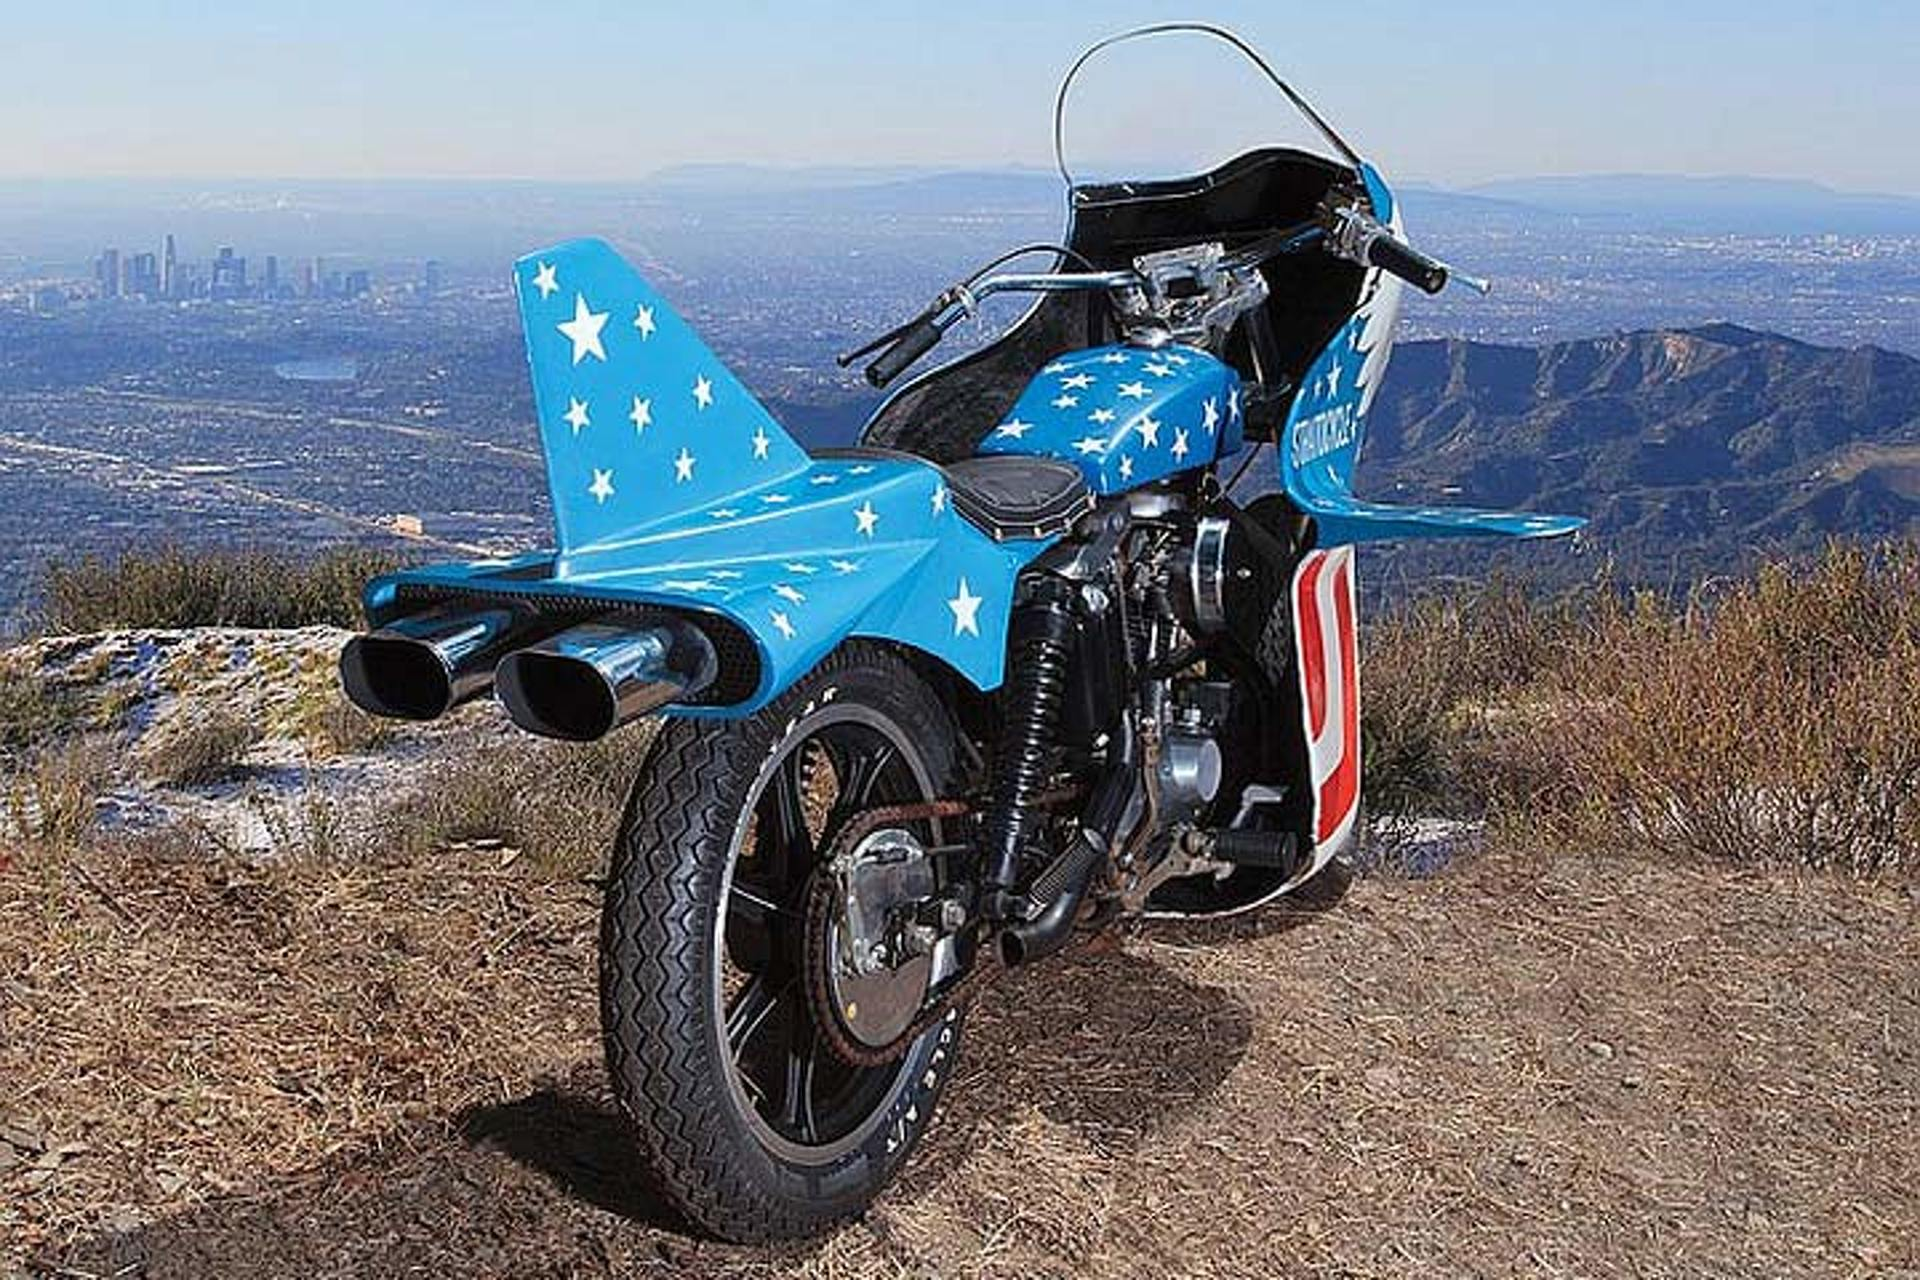 Famous Evel Knievel Bike At Auction: The Rare Evel Knievel Stratocycle Goes To Auction, And It